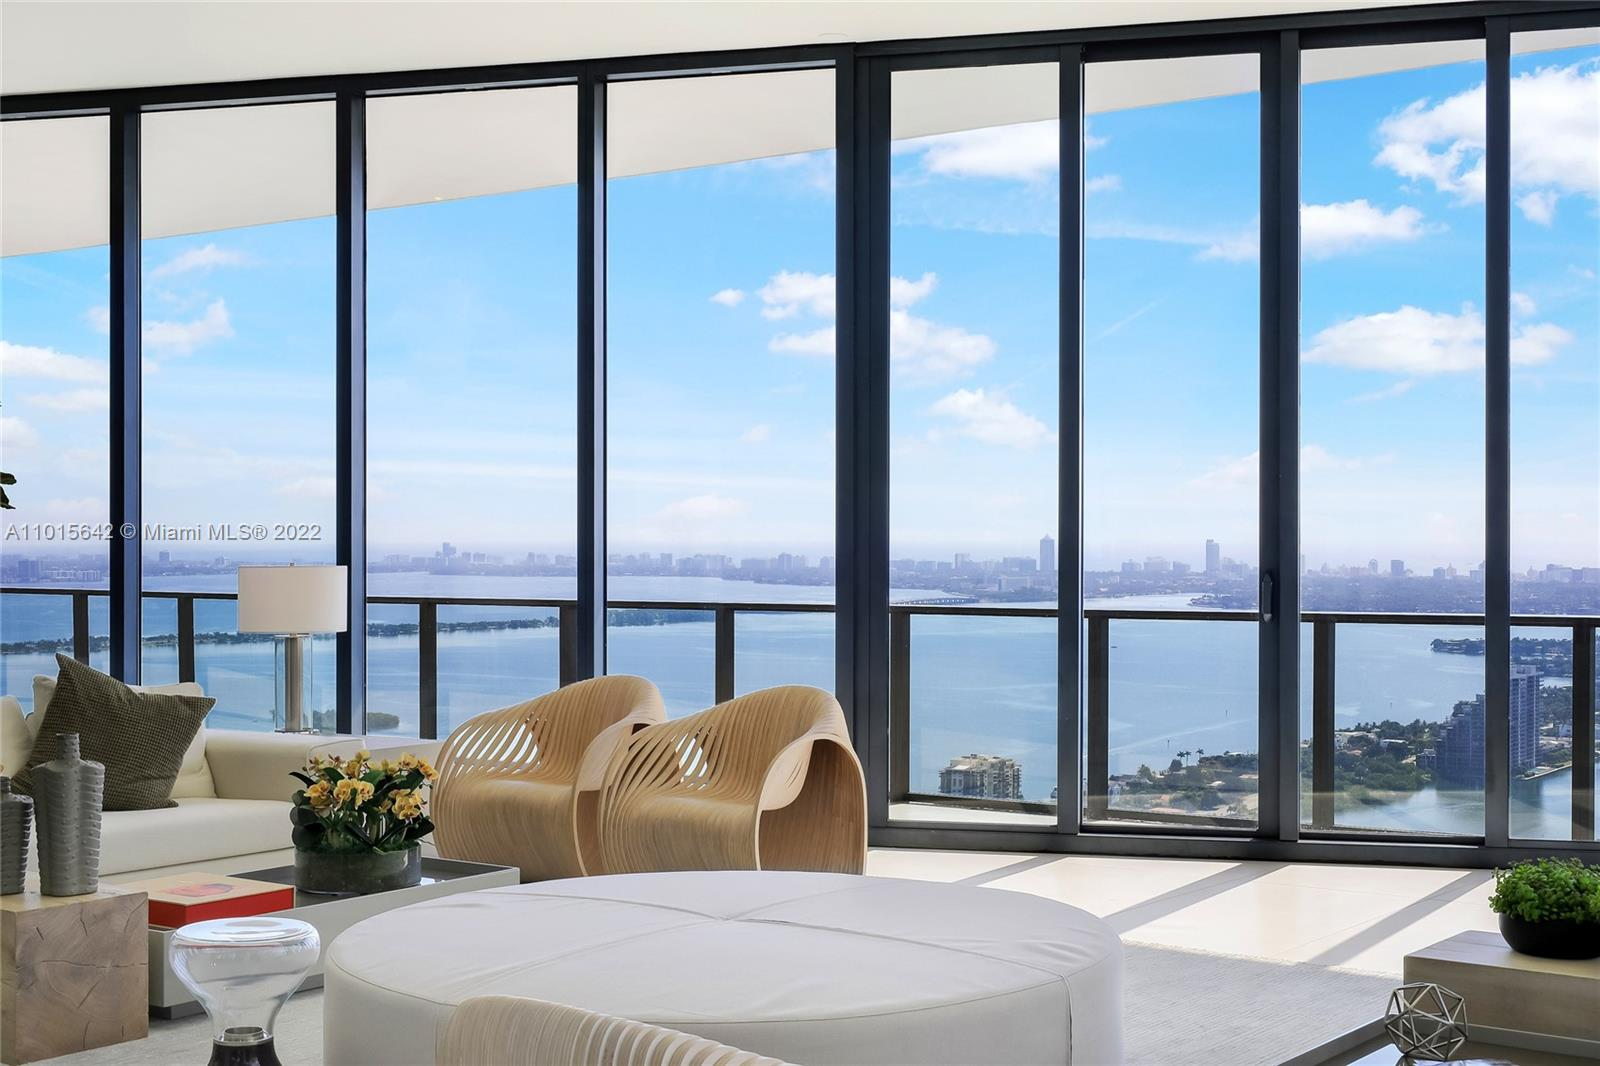 When only the best will do. The only turn key ready, full floor Penthouse in a renowned Zaha designed building with a private helipad on the market in S Florida. Every aspect, every corner of this Penthouse is one of a kind. Expansive views in every direction are ever-present through glass walls that reach up to 12' ceilings. Master wing is an absolute sanctuary. Four oversized, luxurious suites, with spa baths & terrace access. Perfect for entertaining, this residence offers an open-plan flow, from a great room into a formal dining room and out onto a 1,200-SqFt terrace. White glove service, six star amenities and views you have only dreamt of are at your fingertips.  This Penthouse is like no other ... positively mesmerizing.